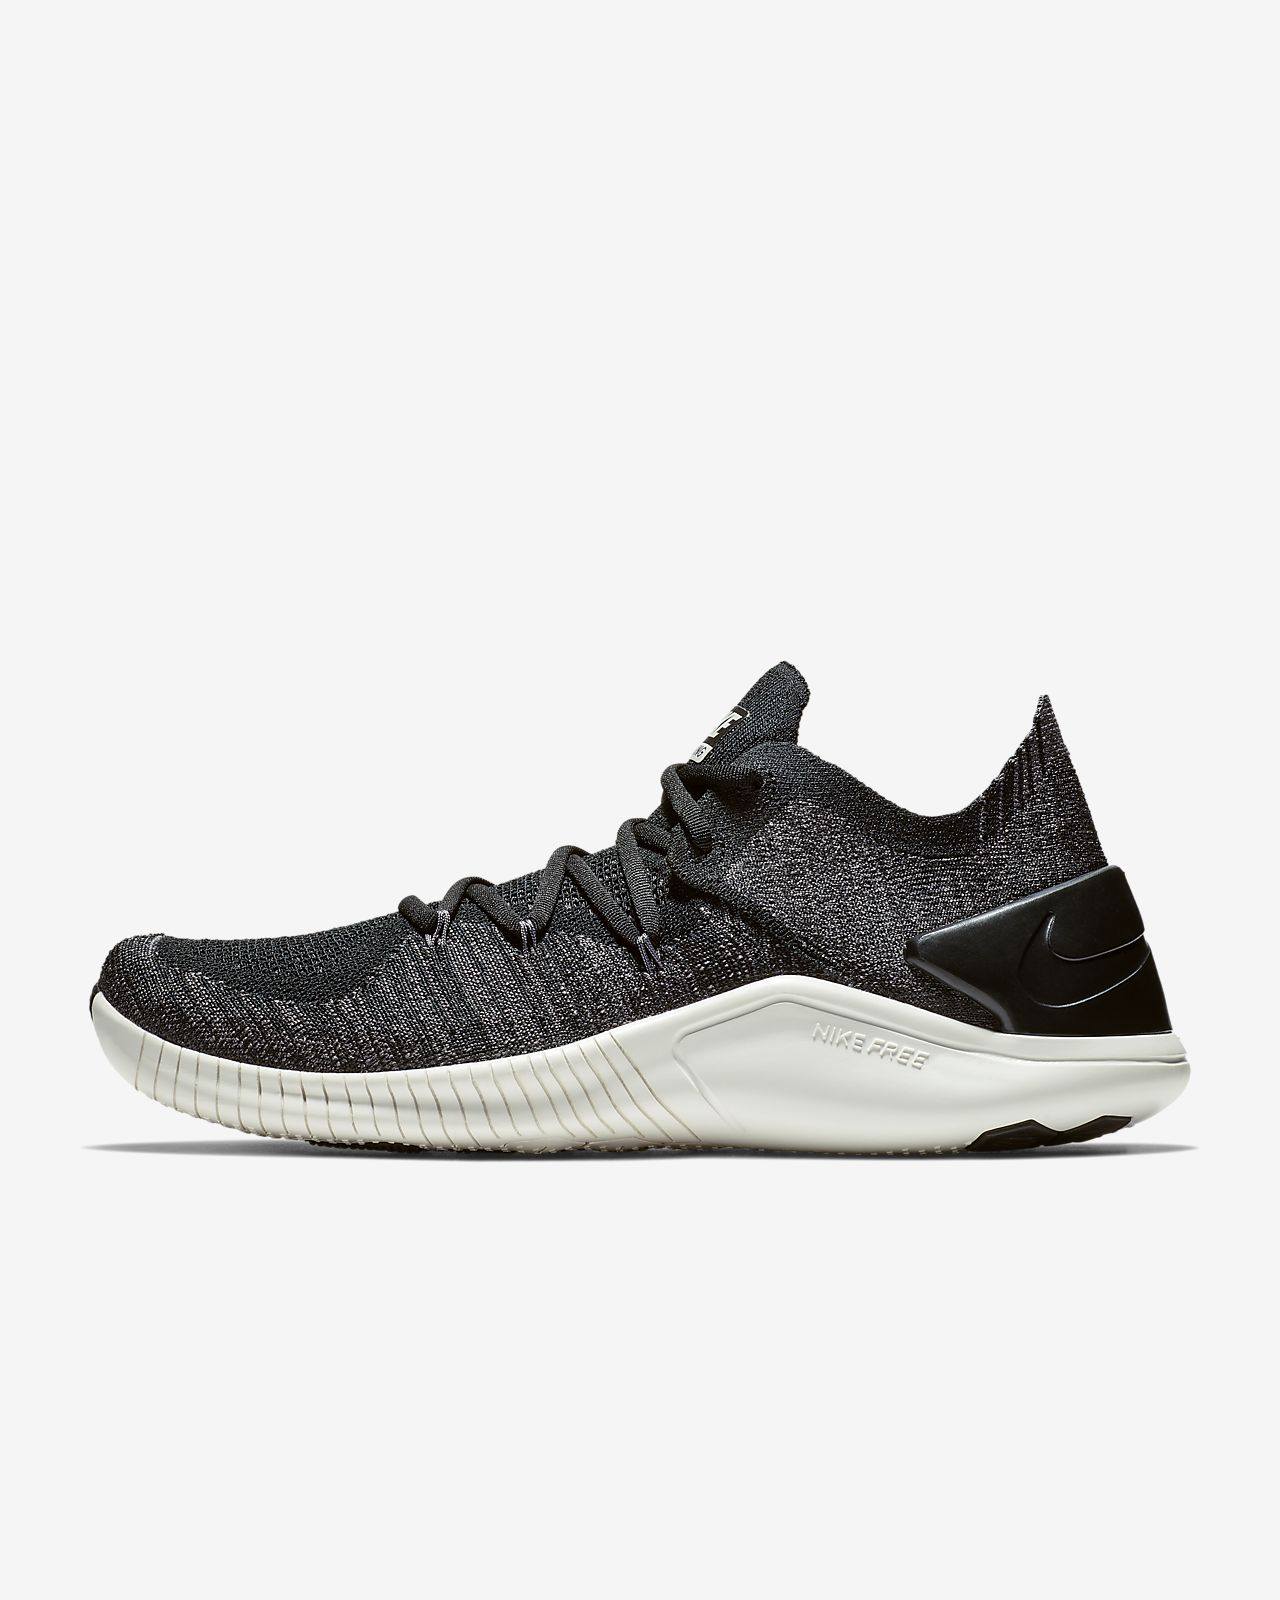 cheaper 97317 11800 Nike Free TR Flyknit 3 Women's Gym/HIIT/Cross Training Shoe